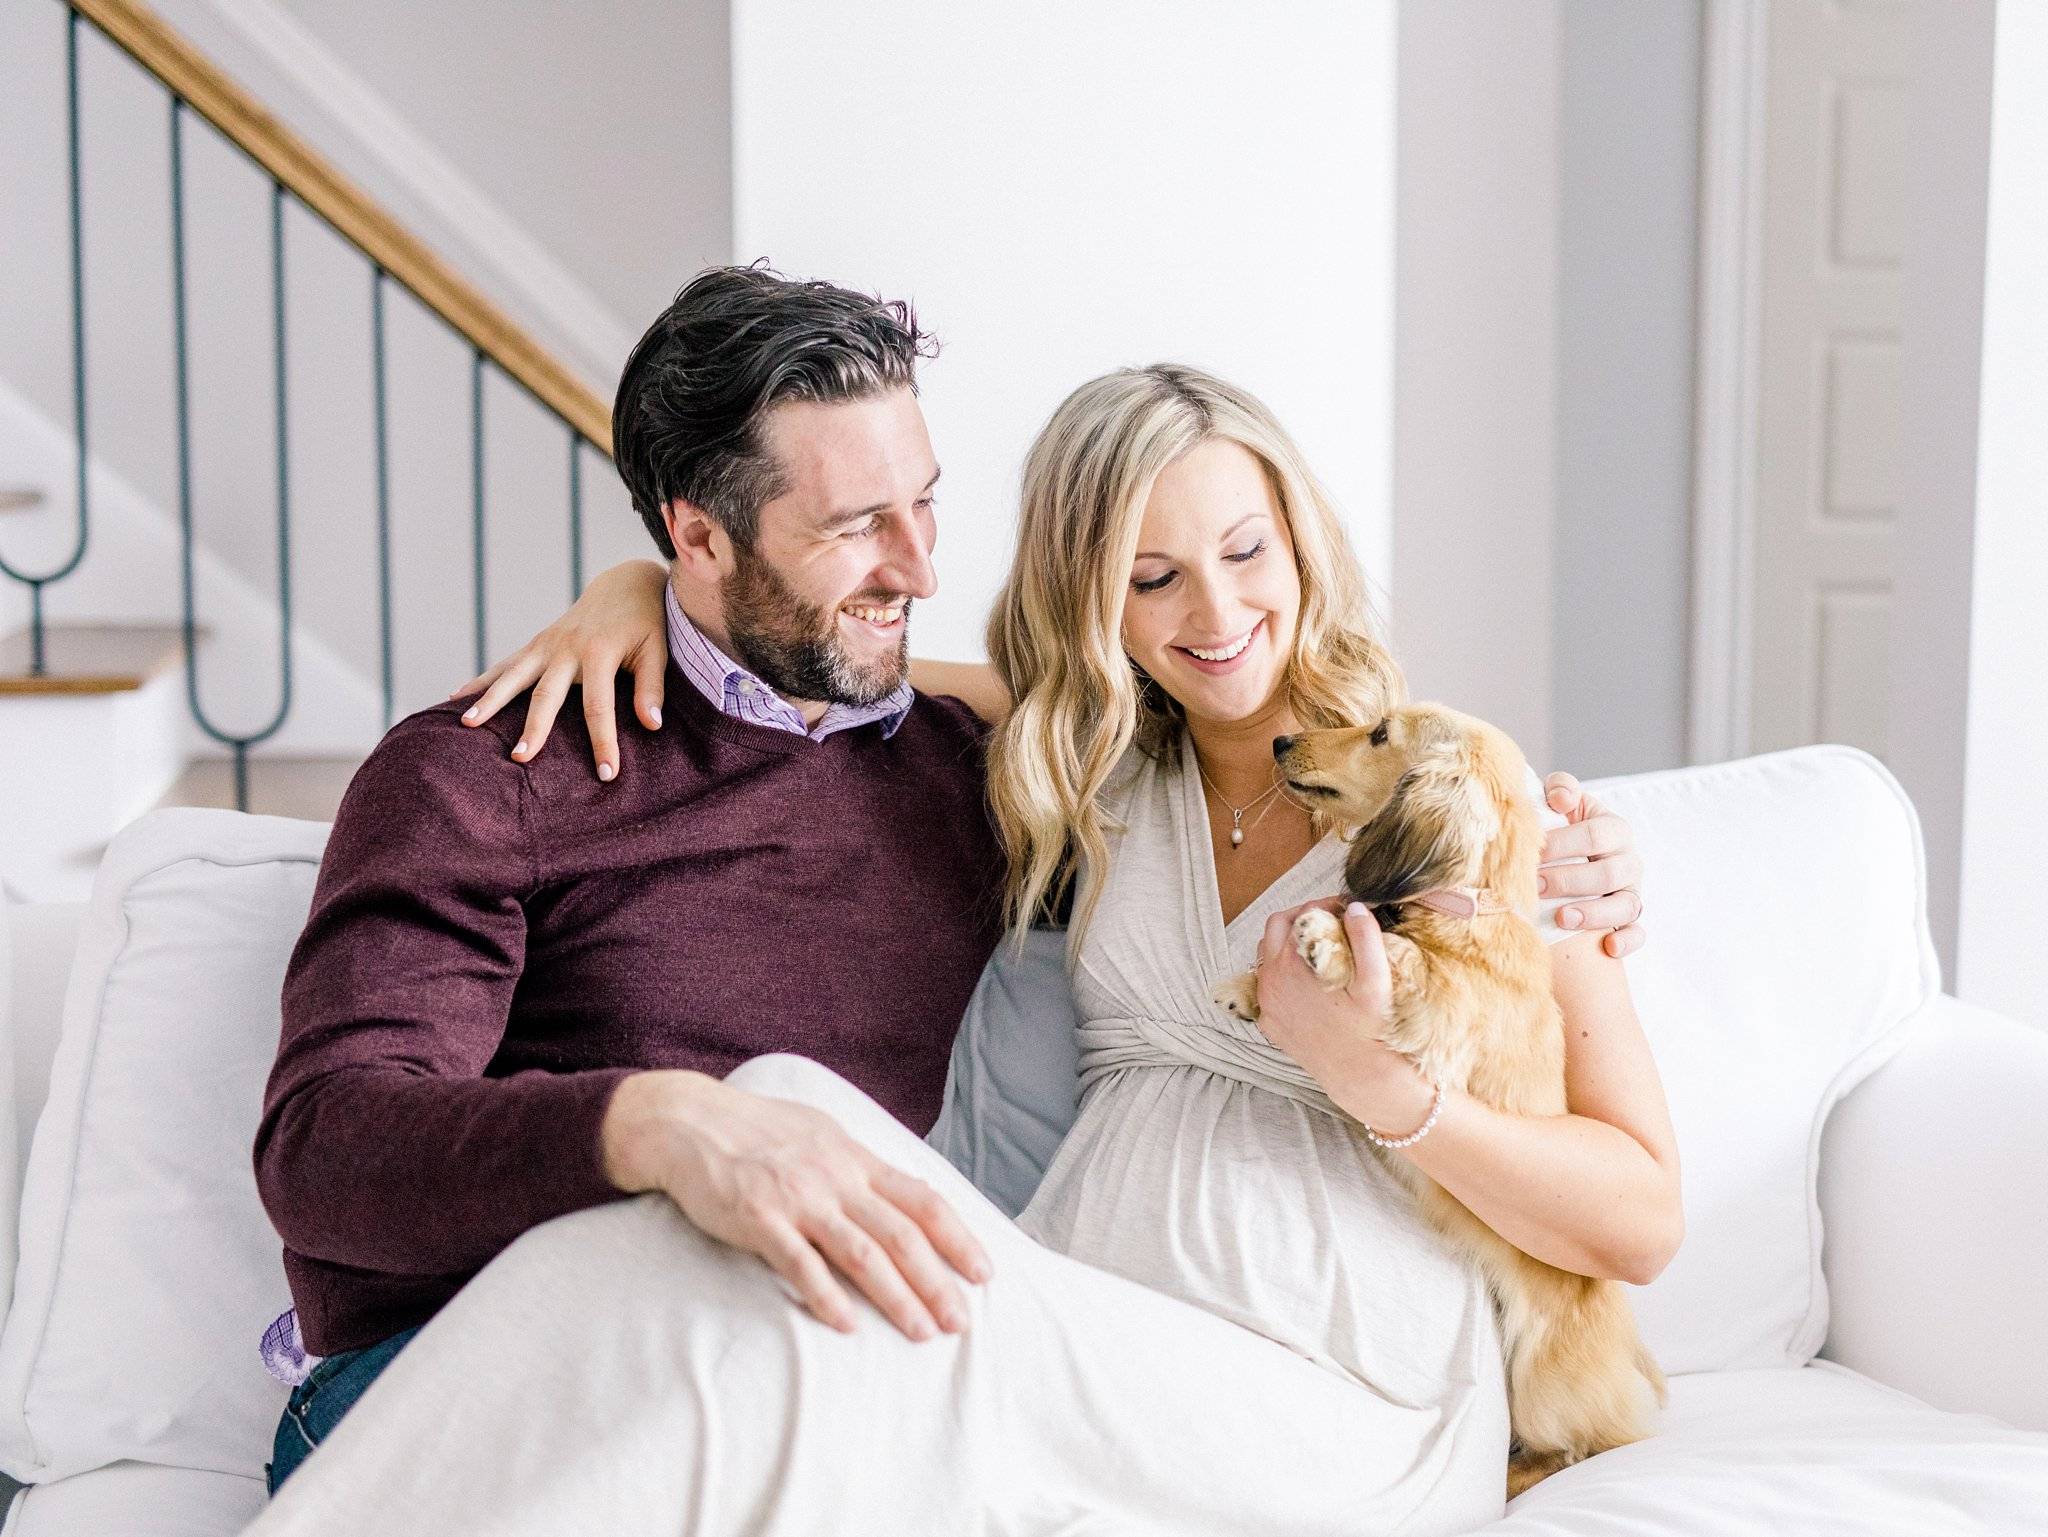 Cream coloured wiener dog lifestyle maternity photos Ottawa